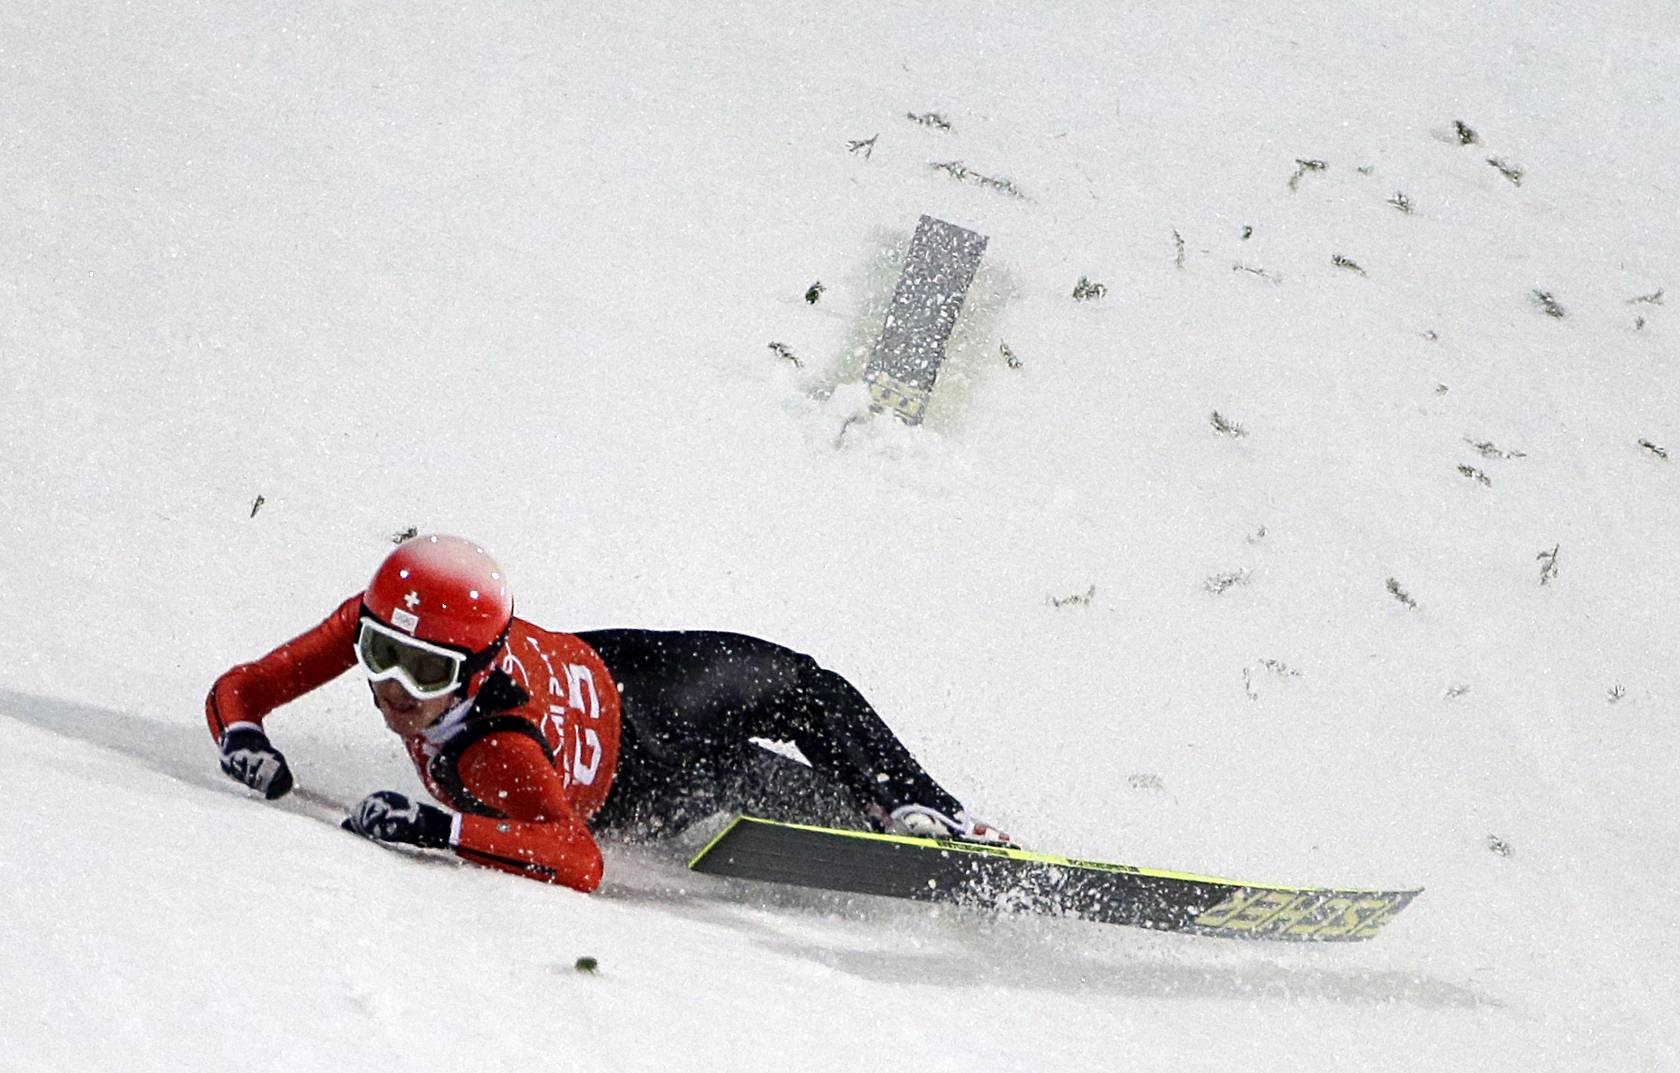 Switzerland's Simon Ammann crashes during a training session for the men's large hill ski jumping .